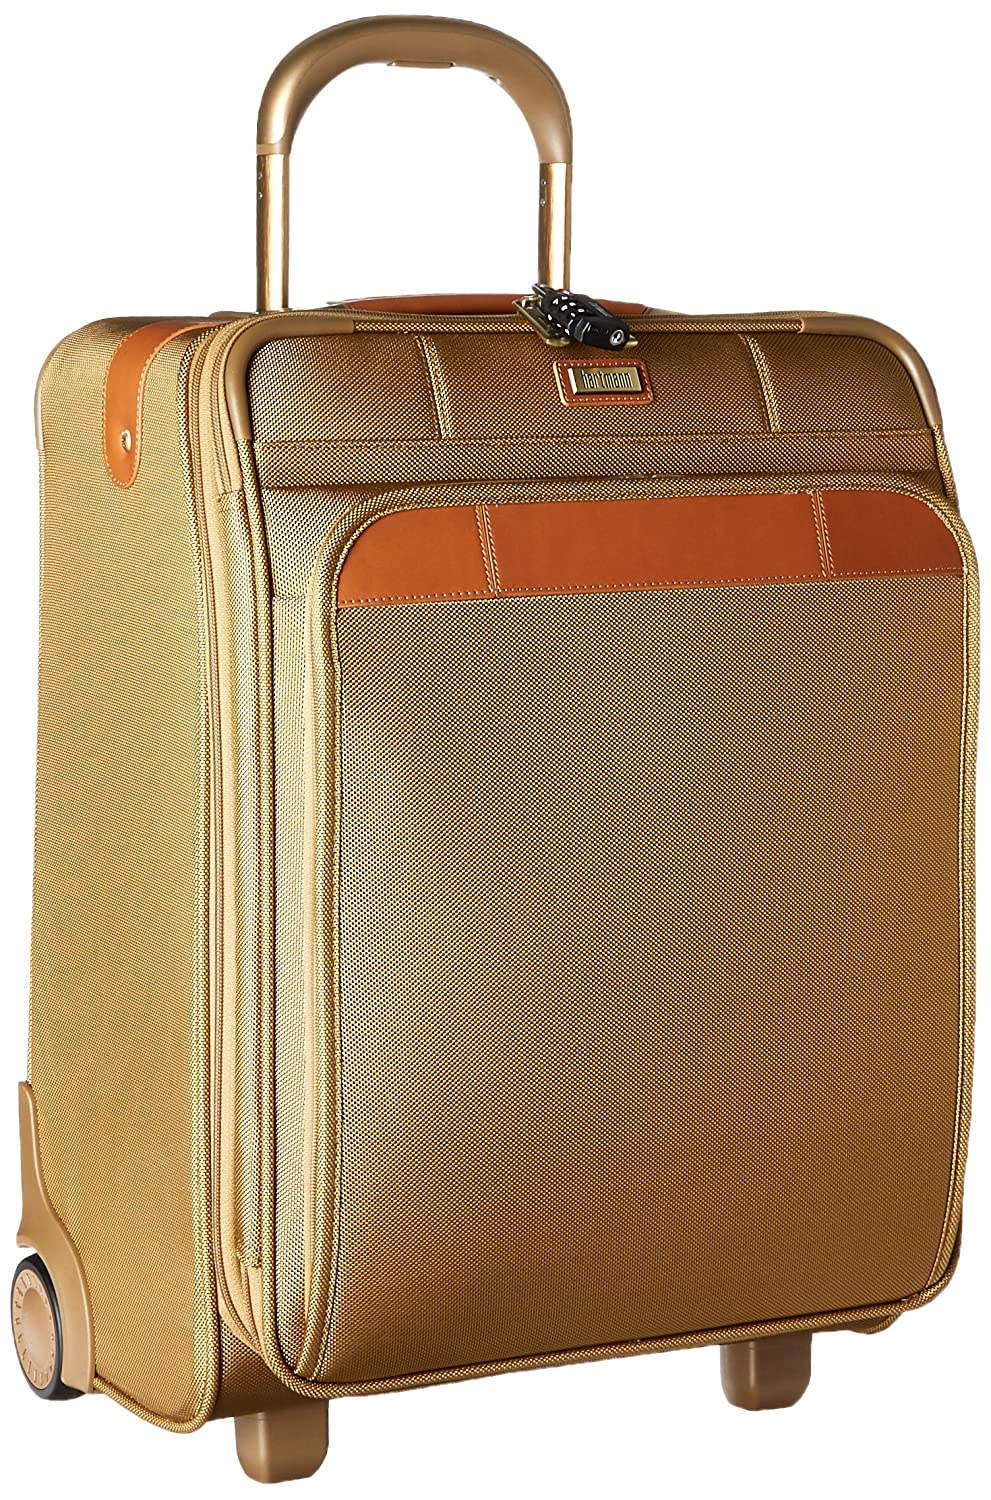 high-quality Hartmann Ratio Classic Deluxe Domestic Expandable Upright Carry On Luggage, Safari